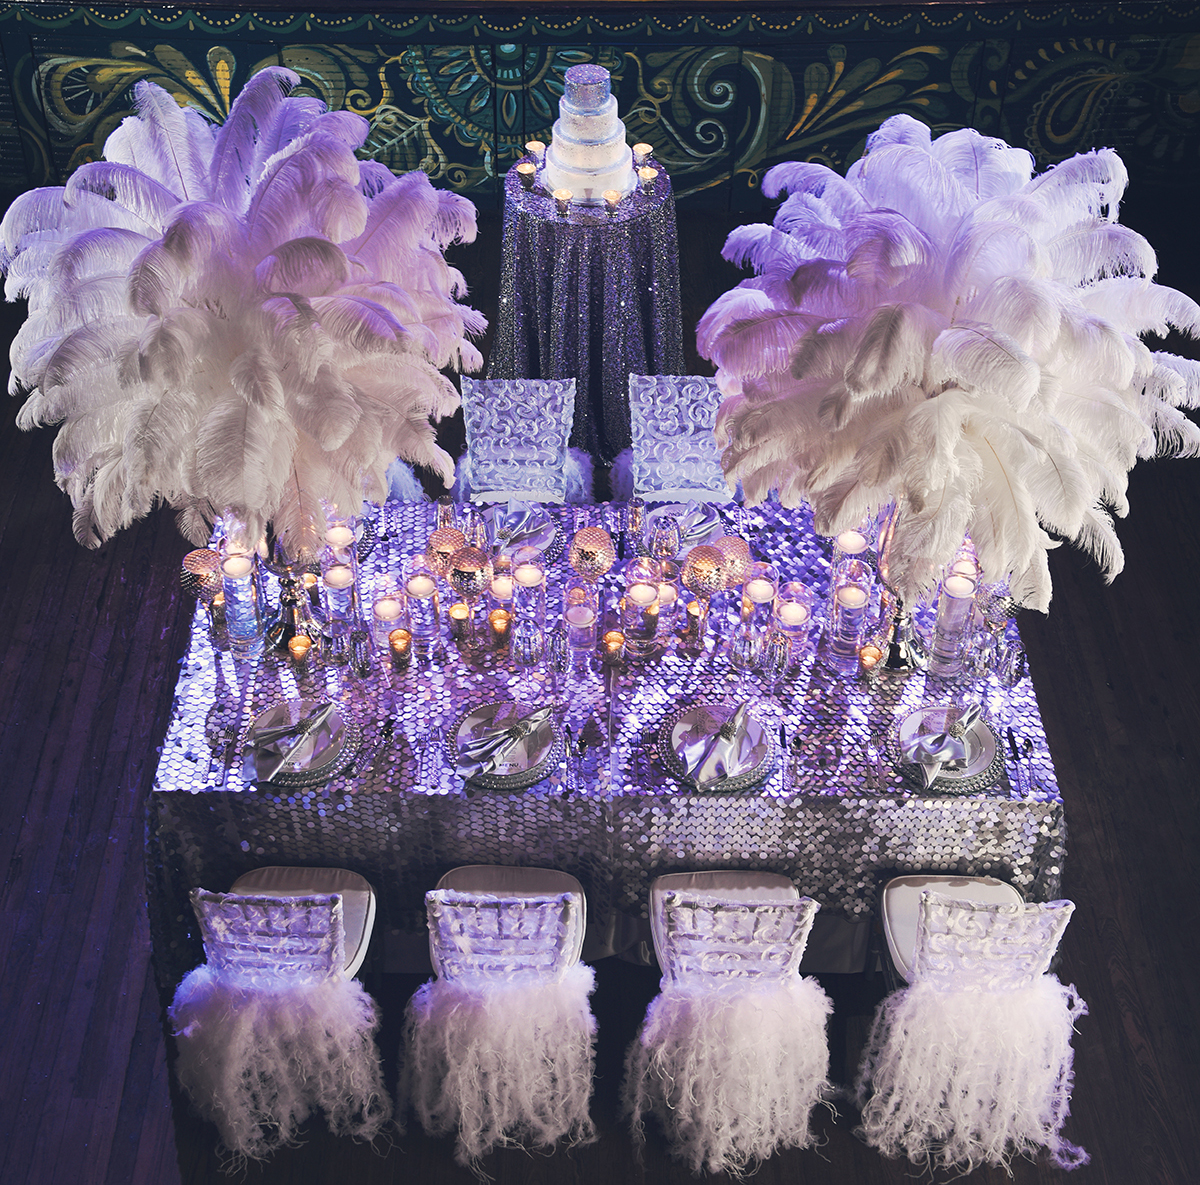 Shimmering sequin linens create a disco ball sensation for this wedding reception table at the House of Blues in New Orleans.